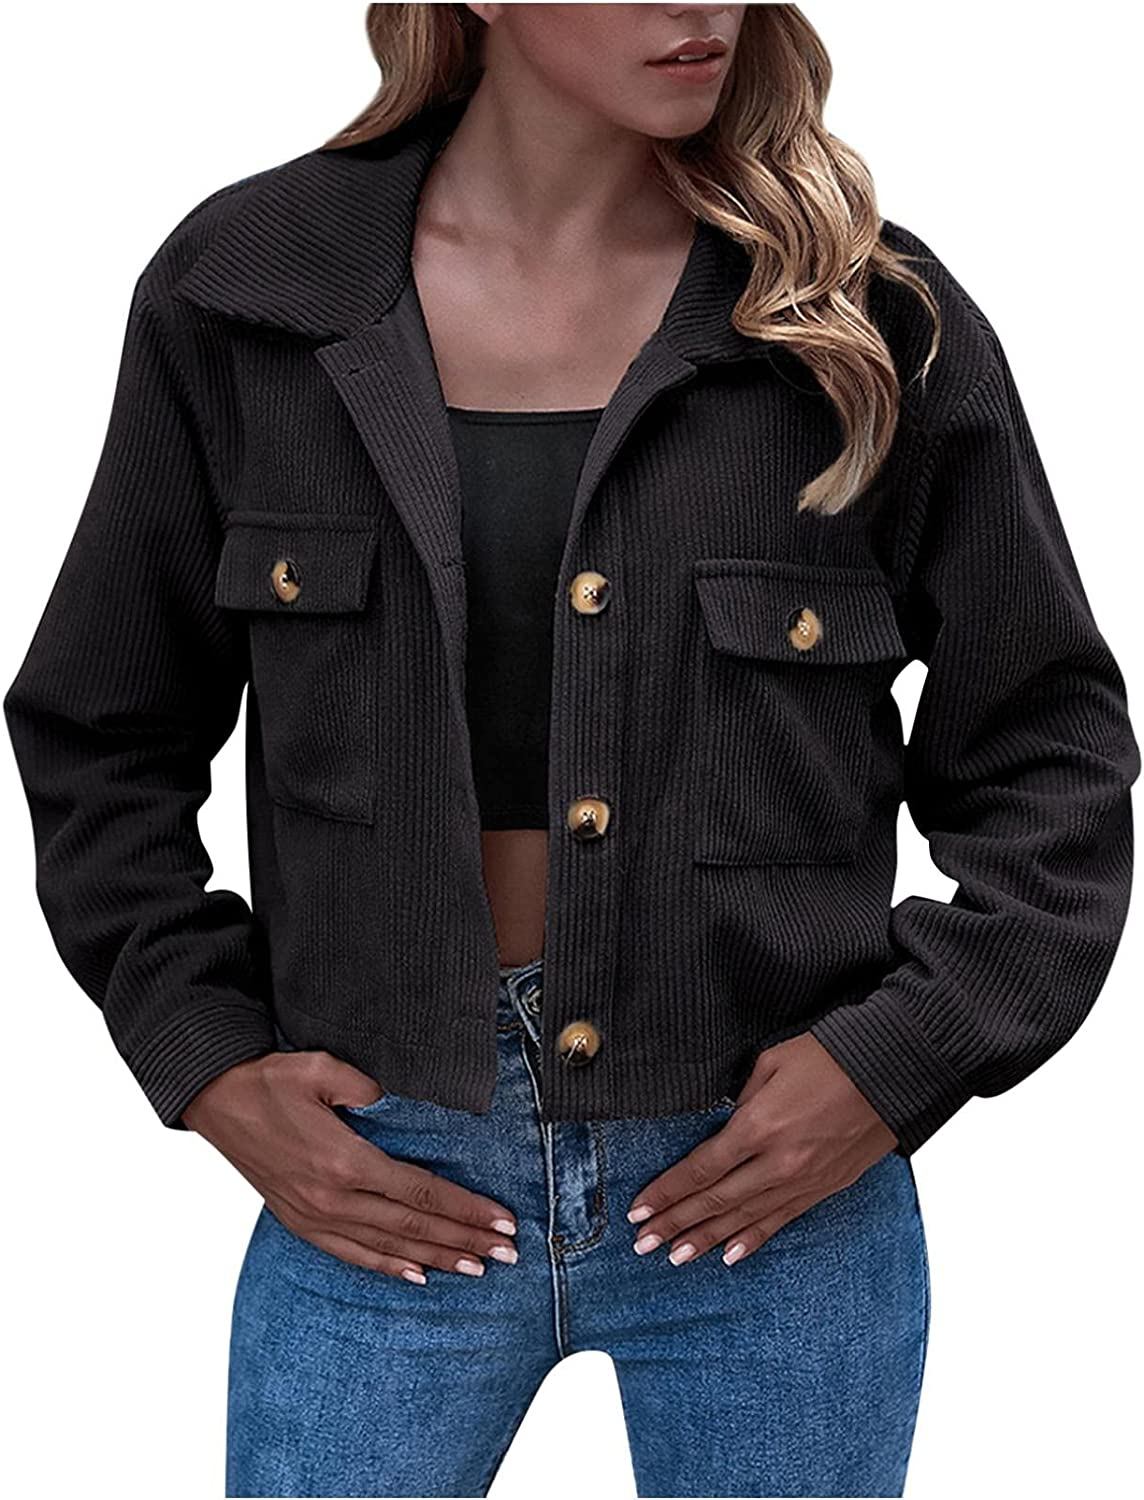 KAIXLIONLY Year-end annual account online shop Halloween Costumes for Women Womens Ladies Coat Warm